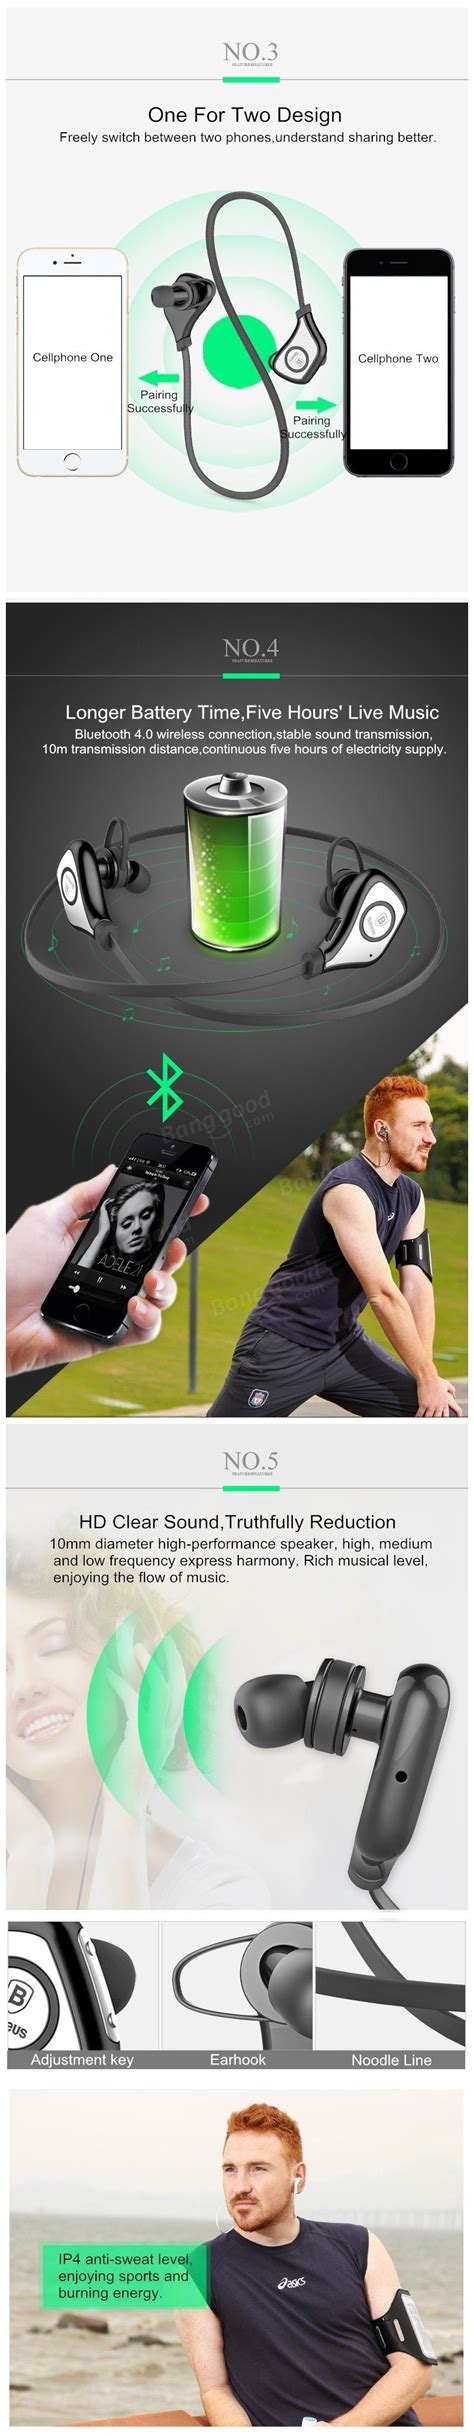 Baseus Musicbaseus Musice Series Sports Bluetooth Headphone In Ear Hd baseus sports series bluetooth stereo in